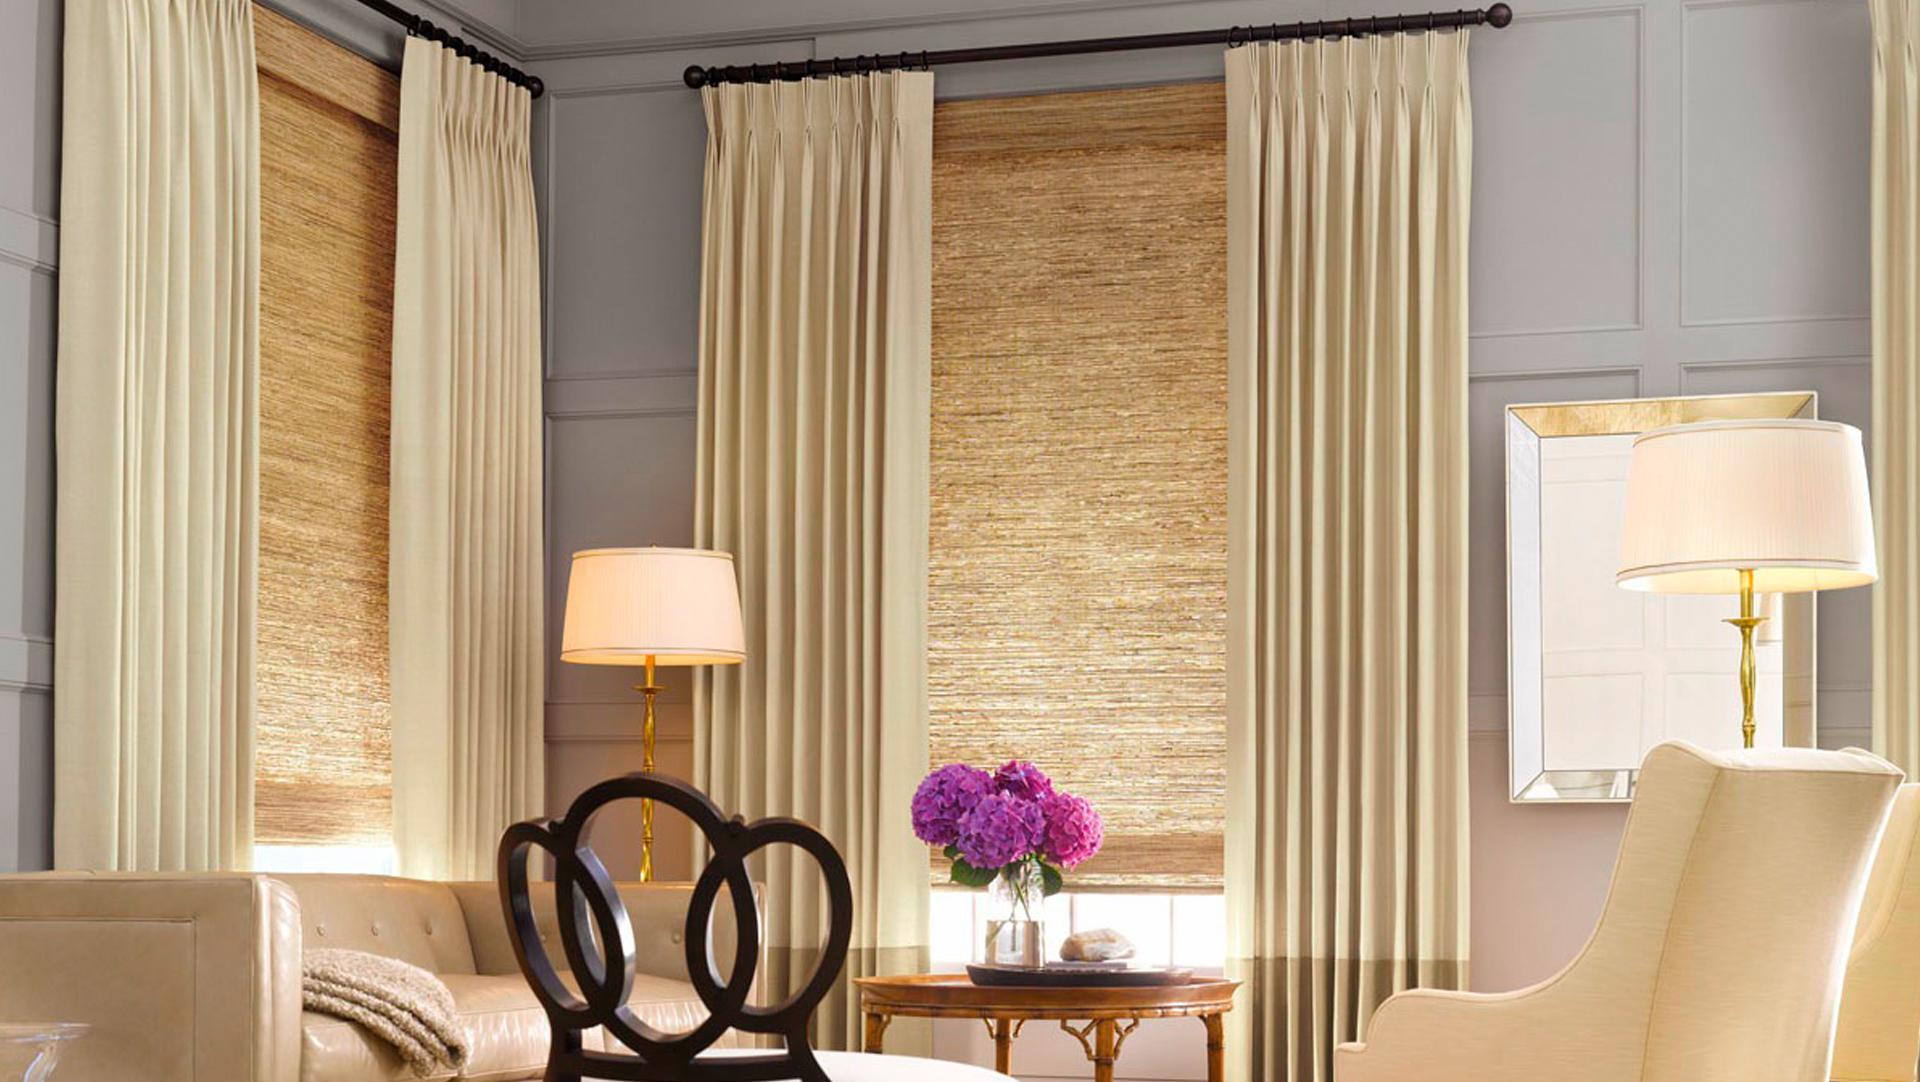 storescurtain curtain of mecurtain size outlet me fabric full onlineonlinecurtain online ideas stores onlinebest picture store near bergen countycurtain